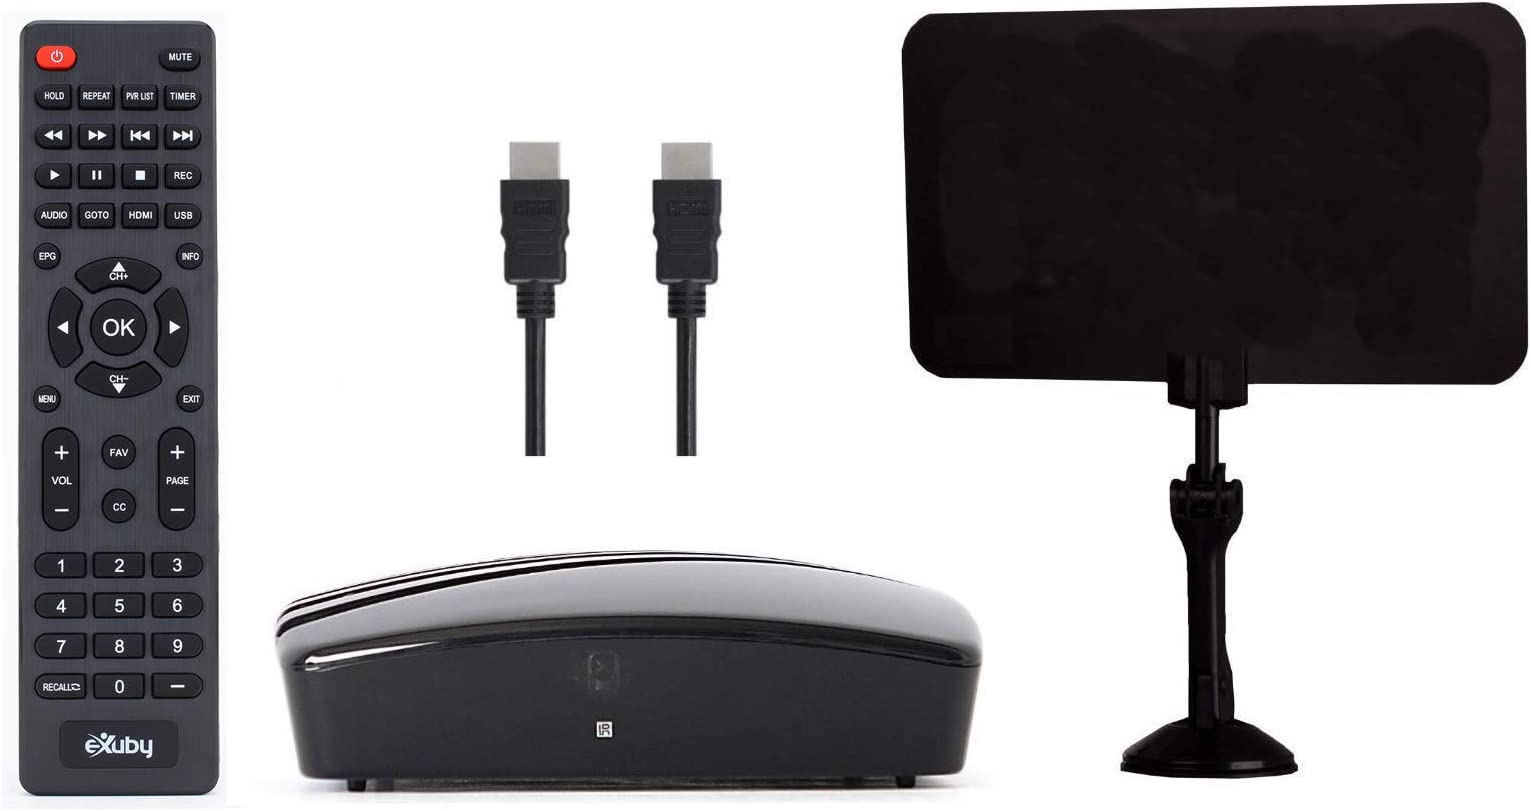 eXuby Digital Converter Box for TV, Antenna, HDMI and RCA Cable - Complete Bundle to View, Record HD Channels Instant or Scheduled Recording, 1080P HDTV, HDMI Output and 7 Day Program Guide